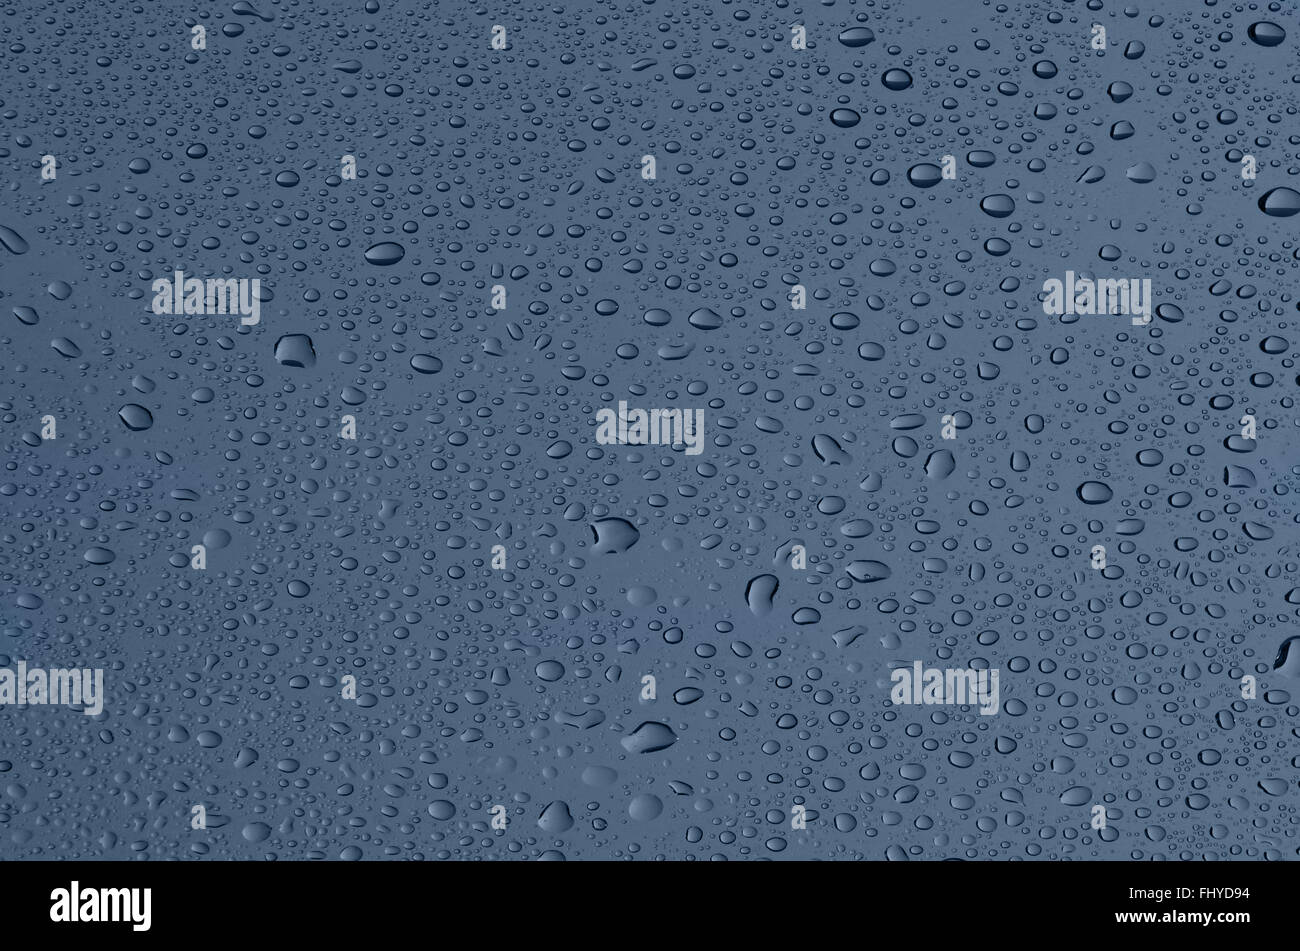 Drops on glass, a grey-blue background Stock Photo